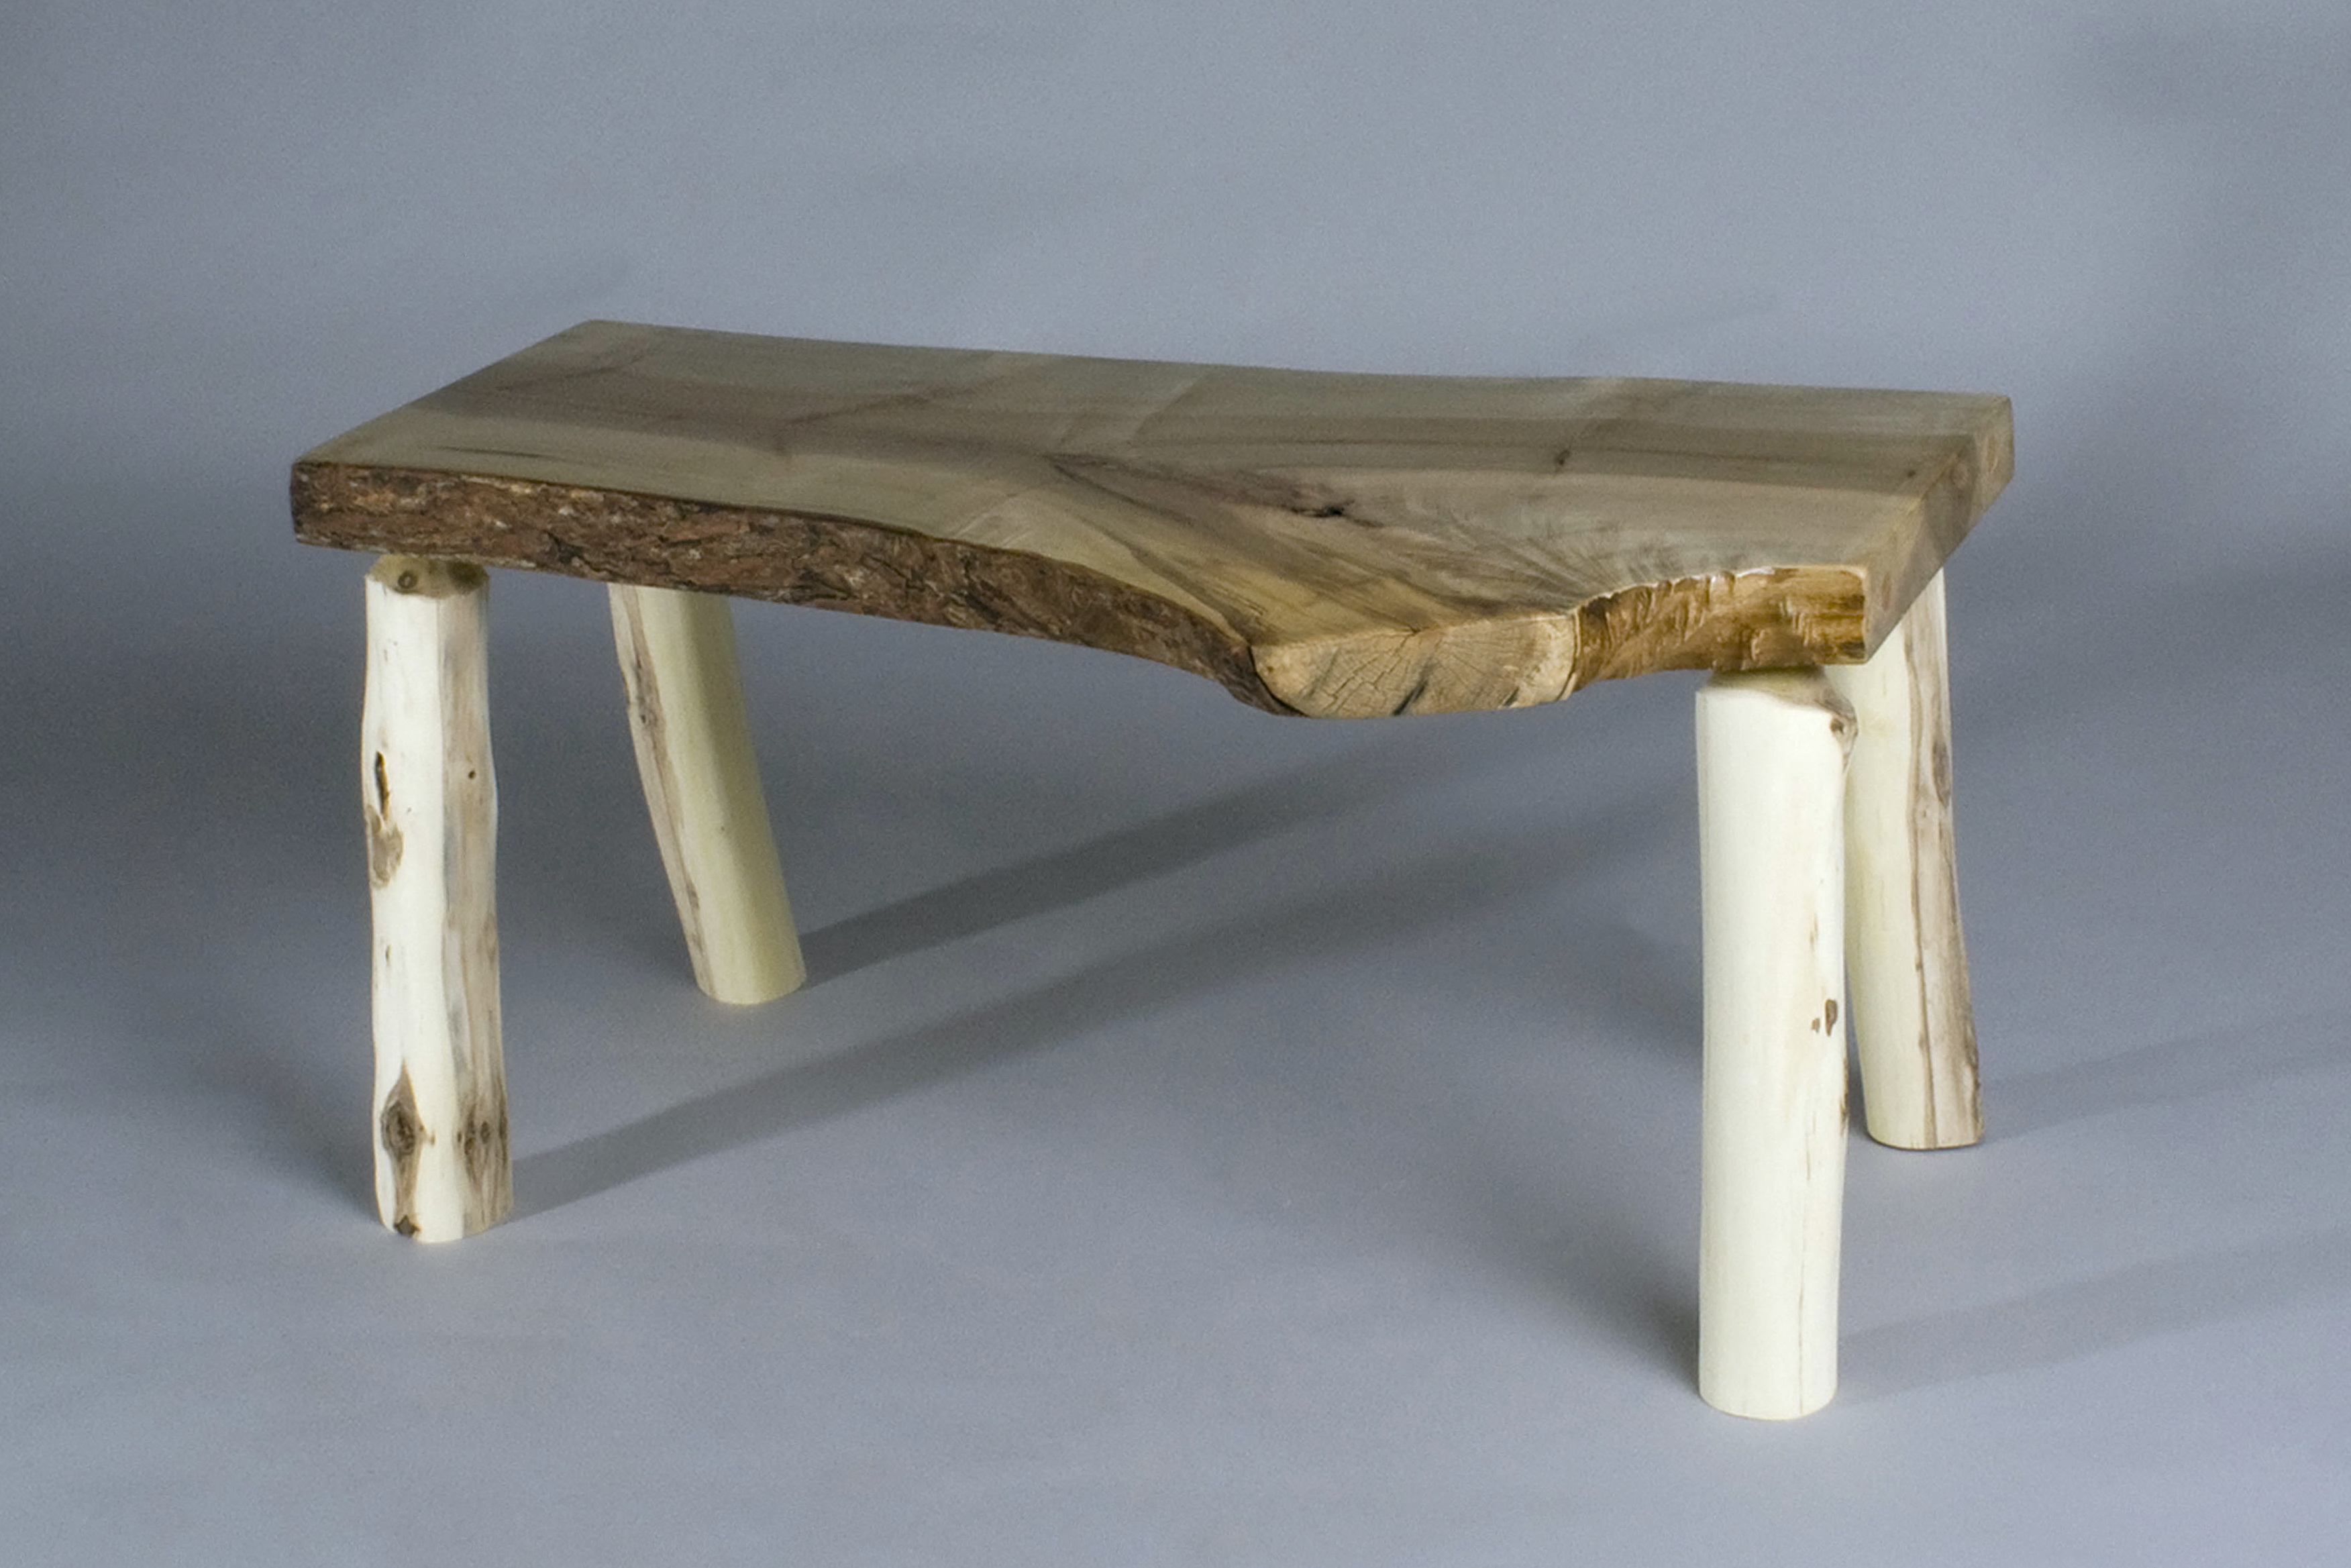 Small Wood Bench Plans Home Design Ideas